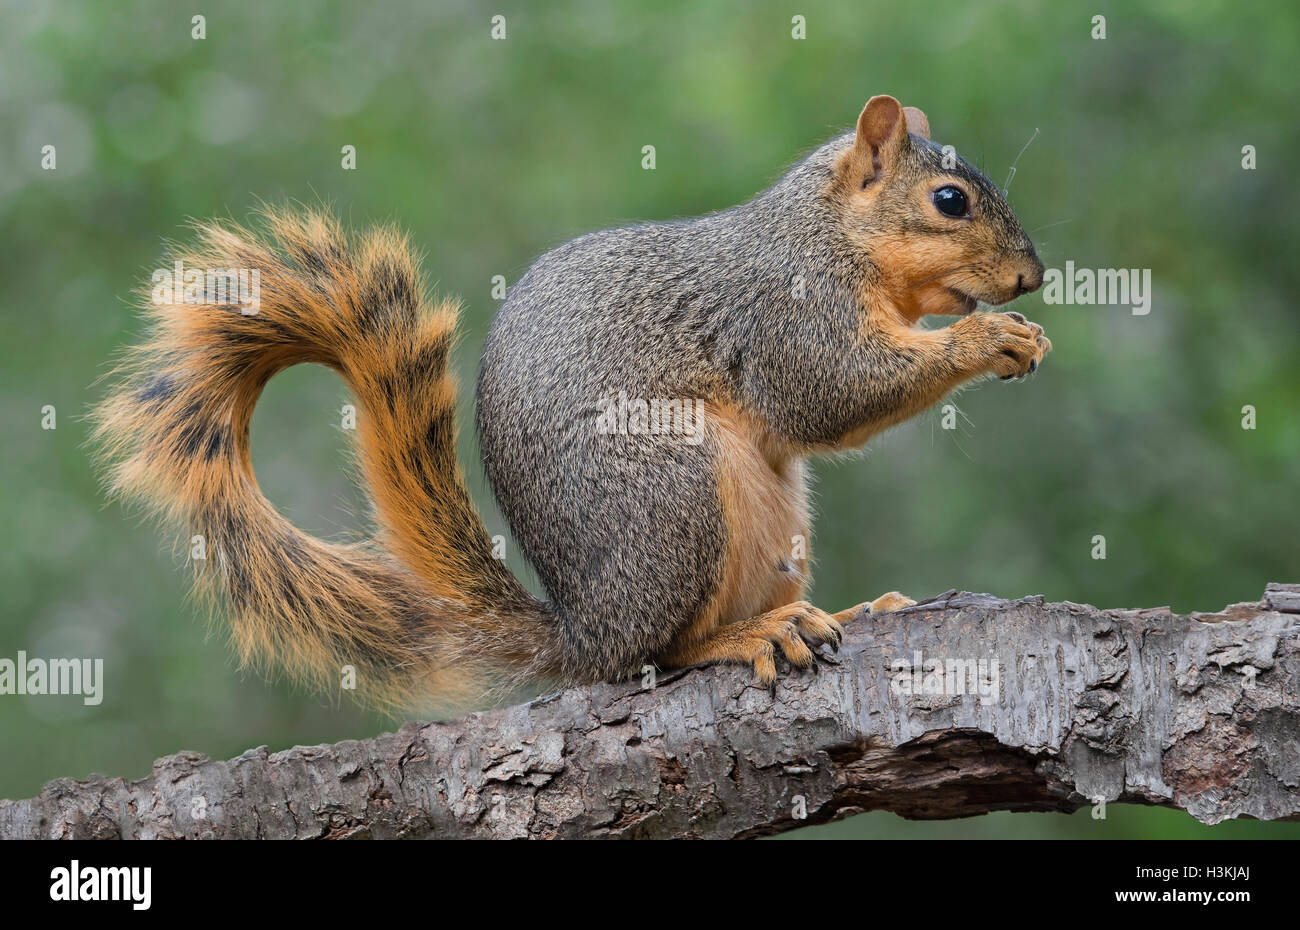 Eastern Fox Squirrel (Sciurus niger) eating nuts, Autumn, E North America - Stock Image